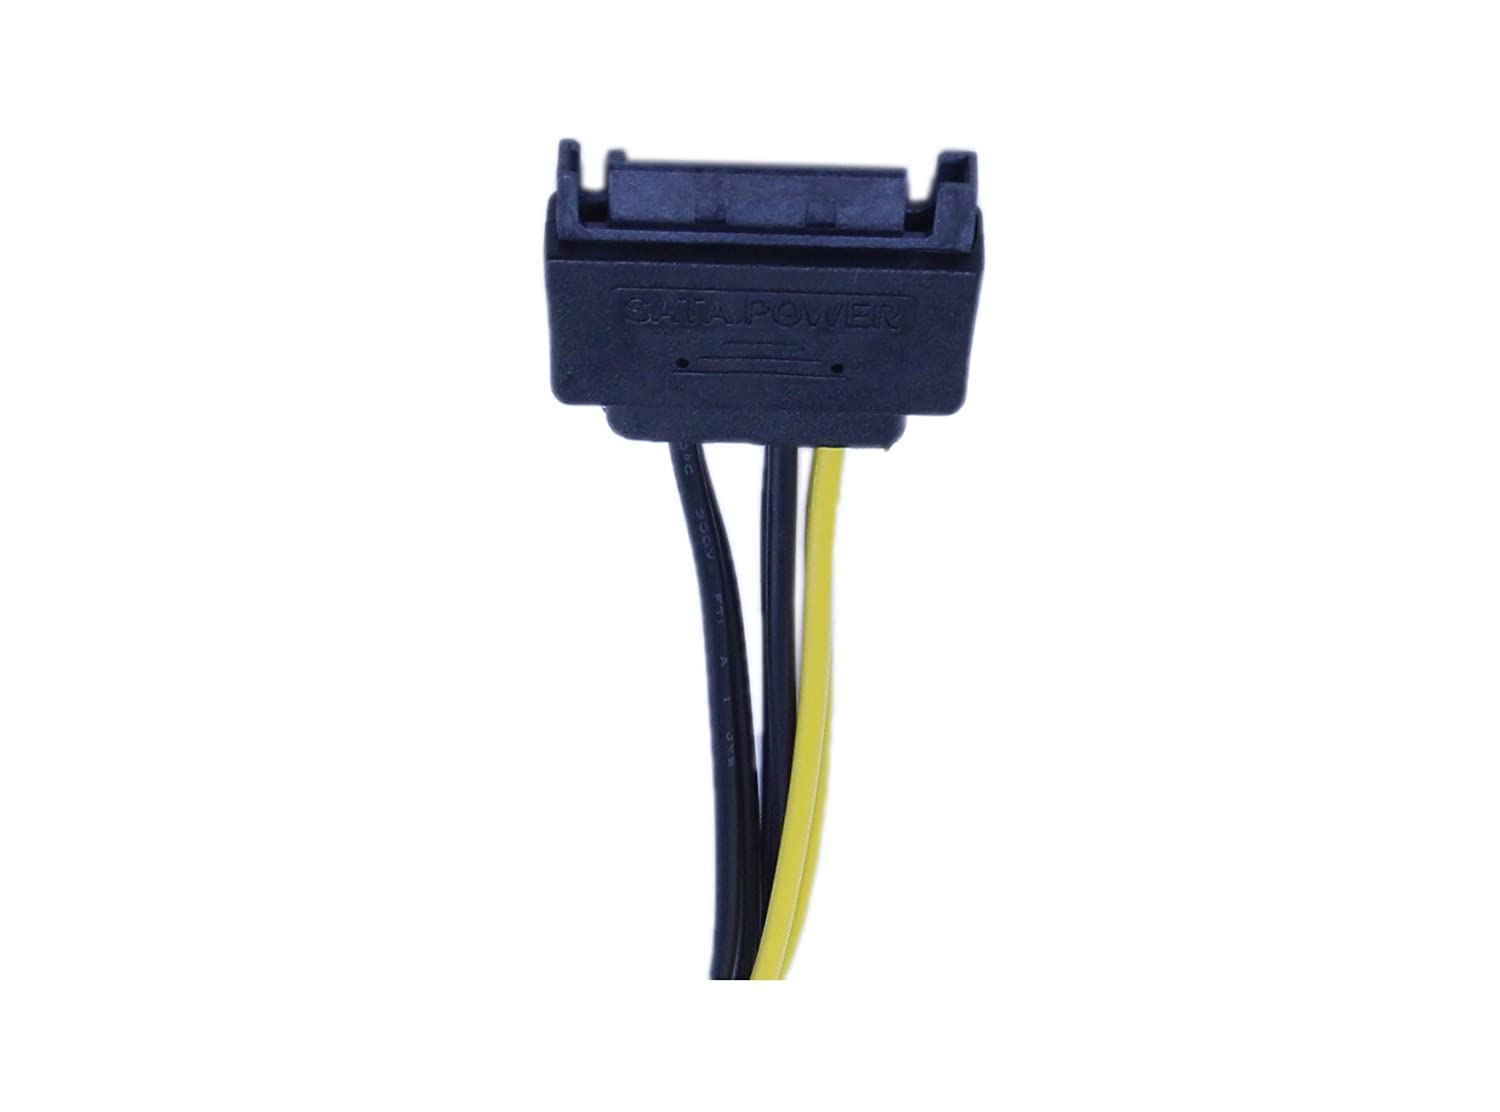 PCI-Express Female Video Card Power Adapter Cable CGTime 15-Pin SATA Male to 8-Pin 6+2 Pin